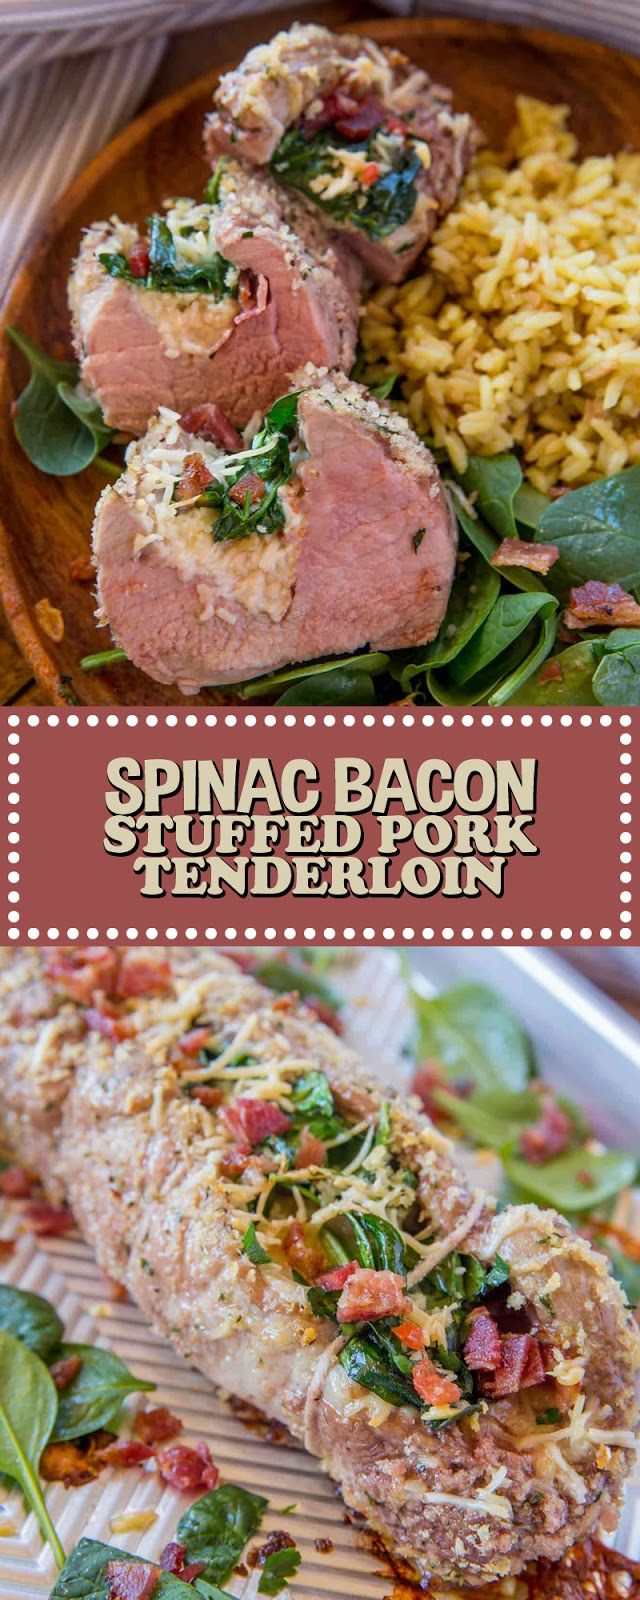 SPINACH BACON STUFFED PORK TENDERLOIN